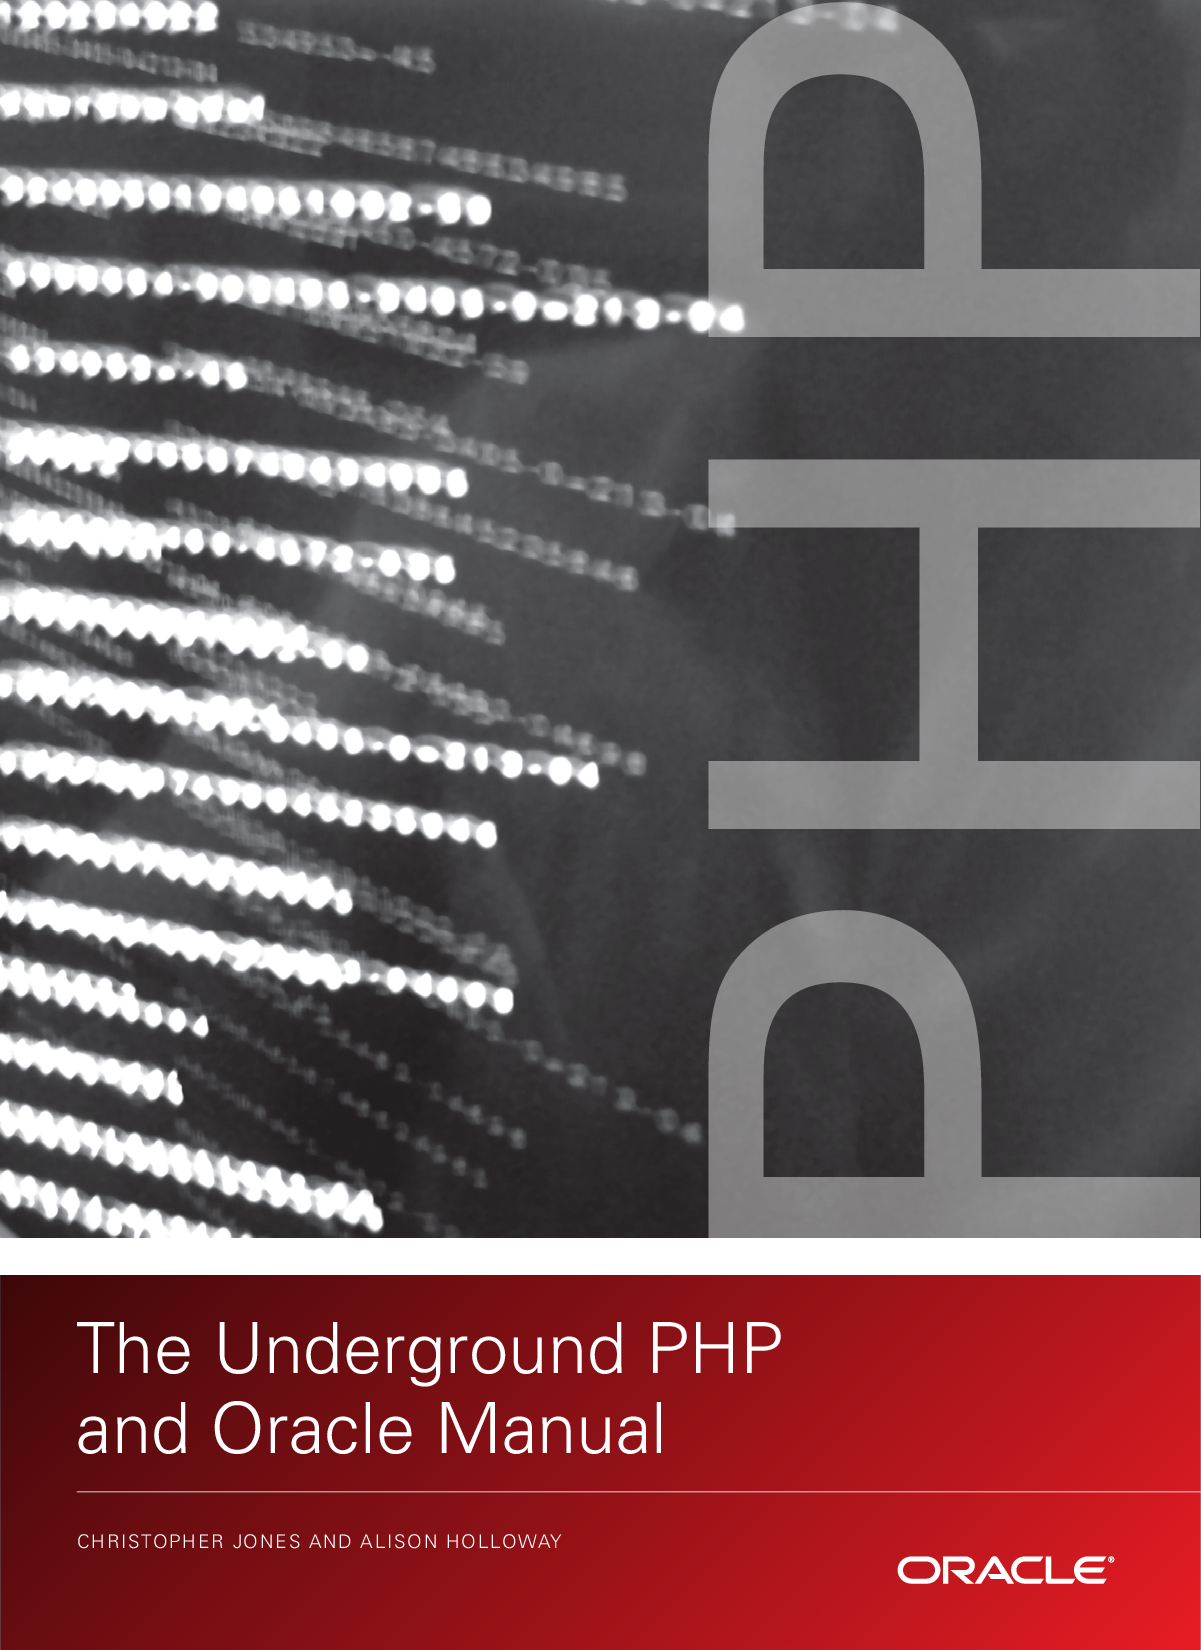 Underground Oracle And PHP Manual 130300